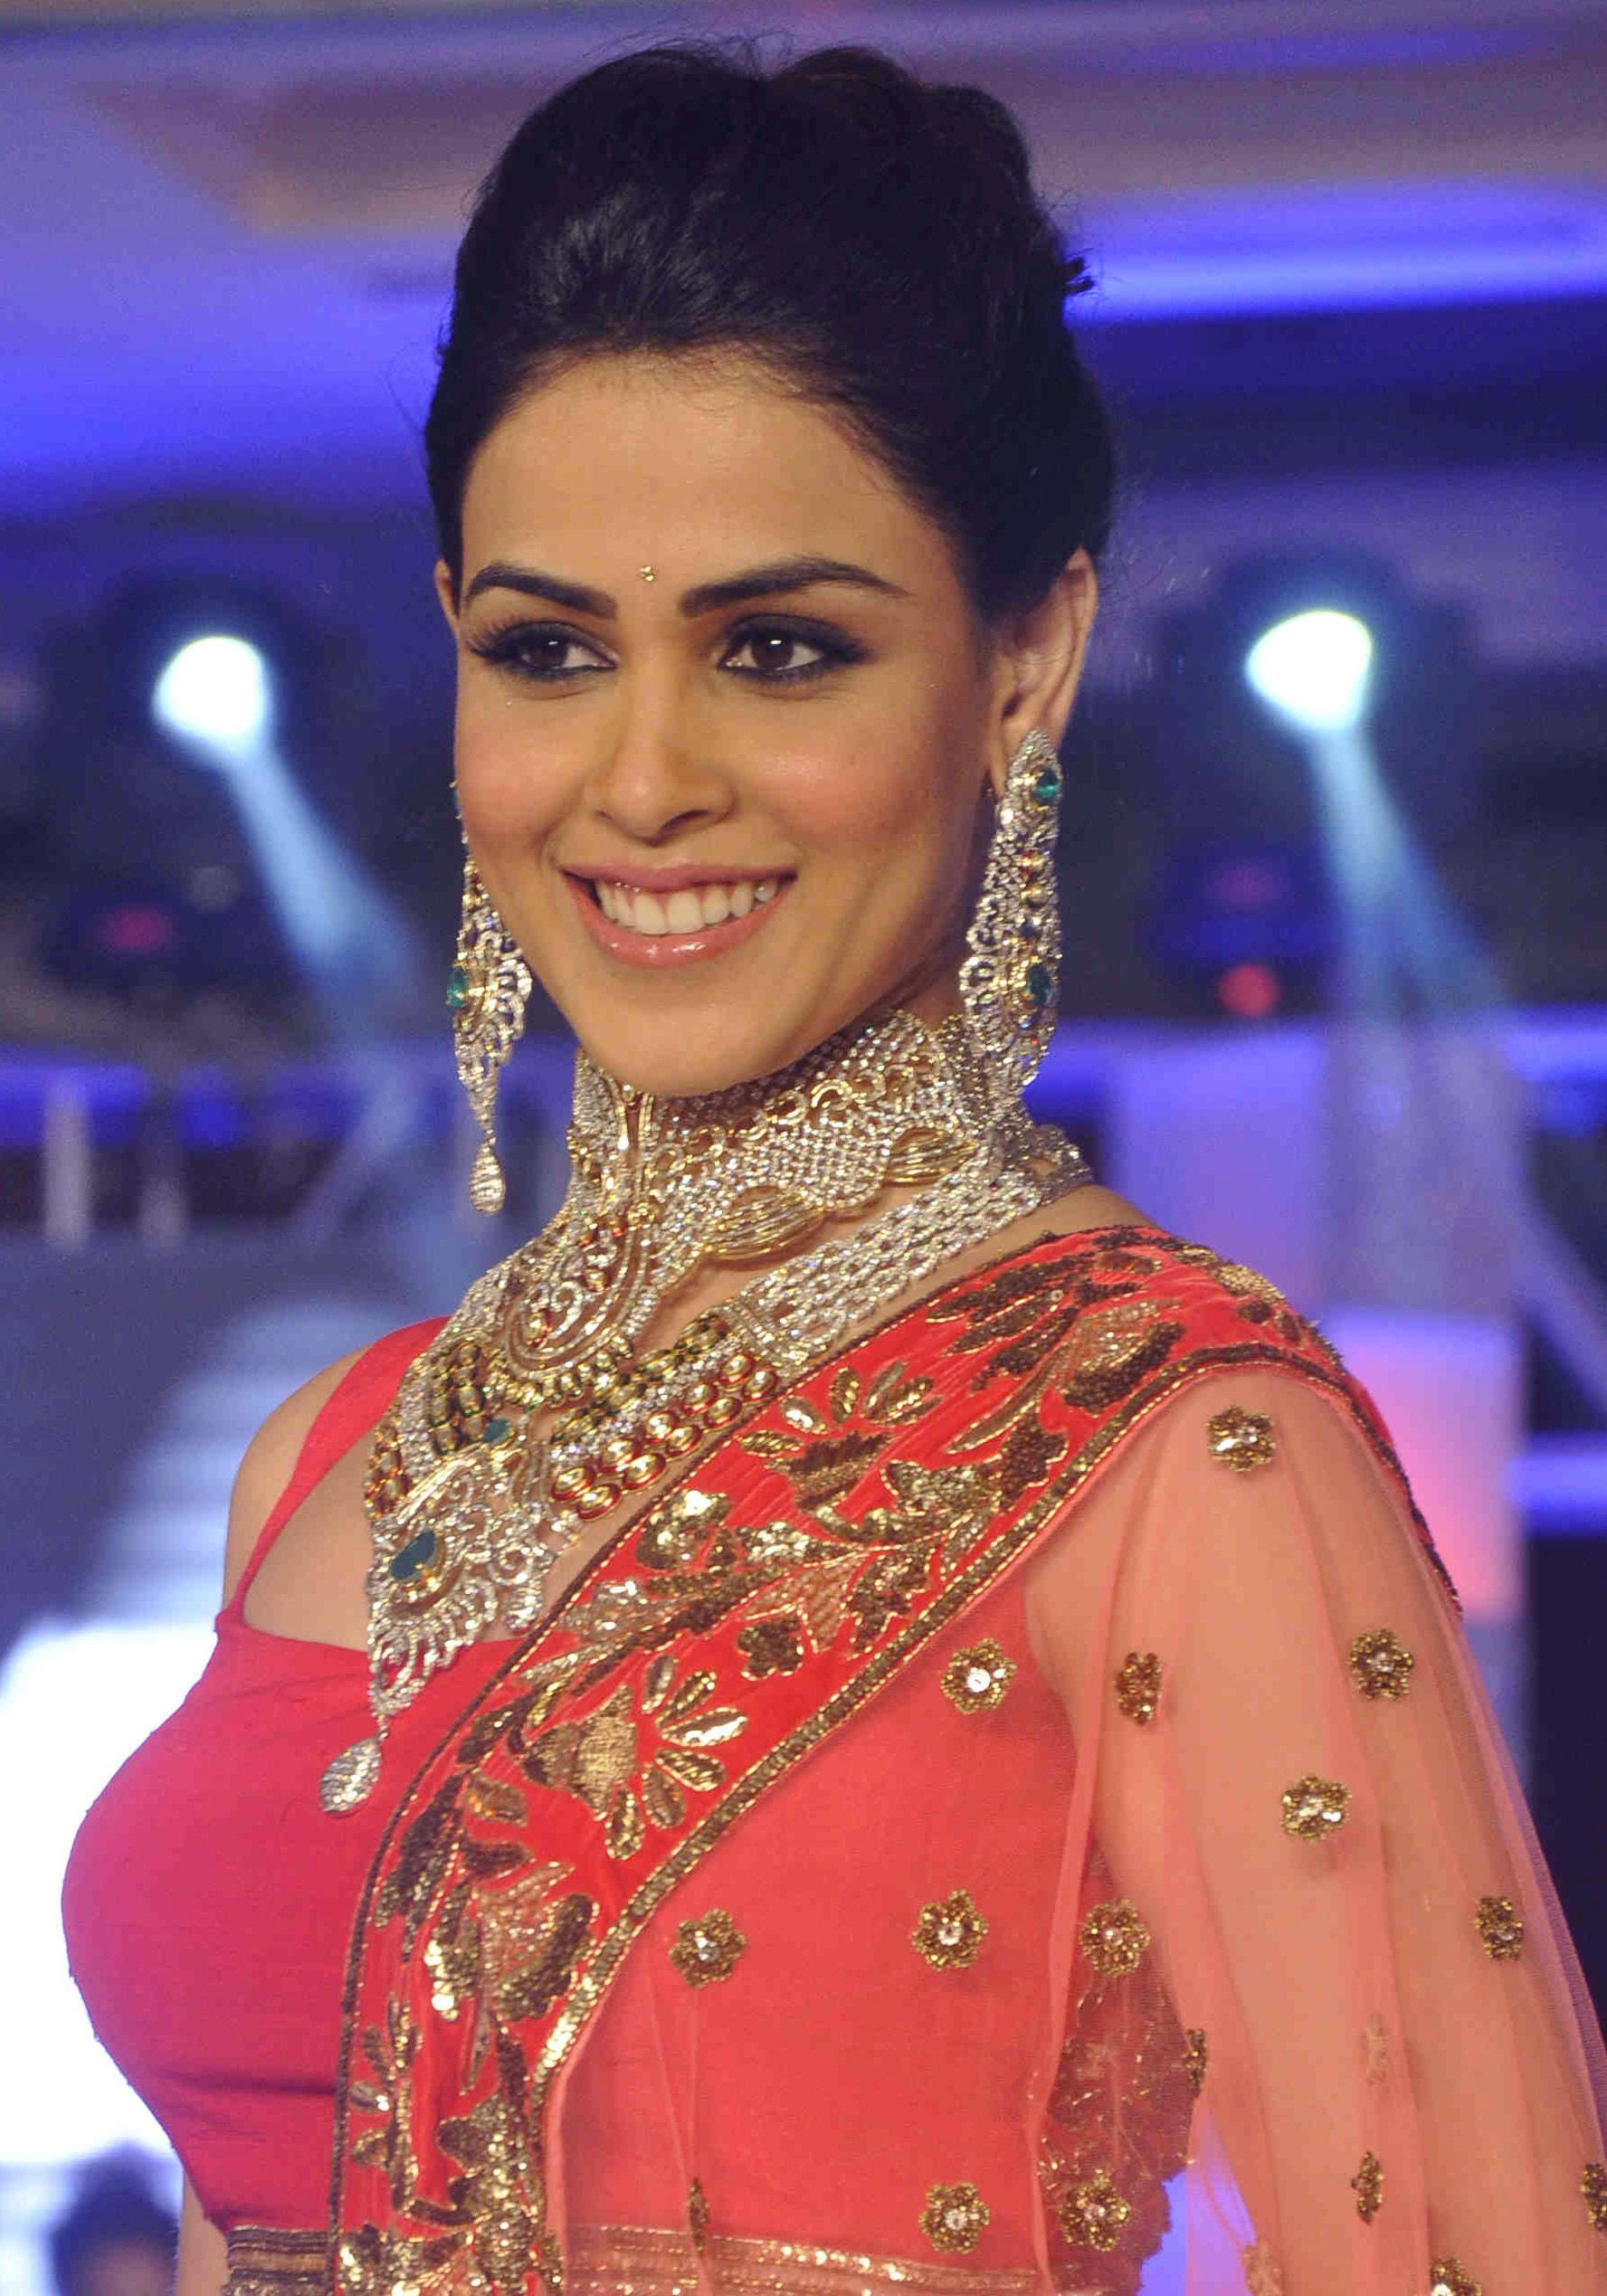 players market for malabar anniversary target kareena gold diamond gifting new hr uk kapoor with